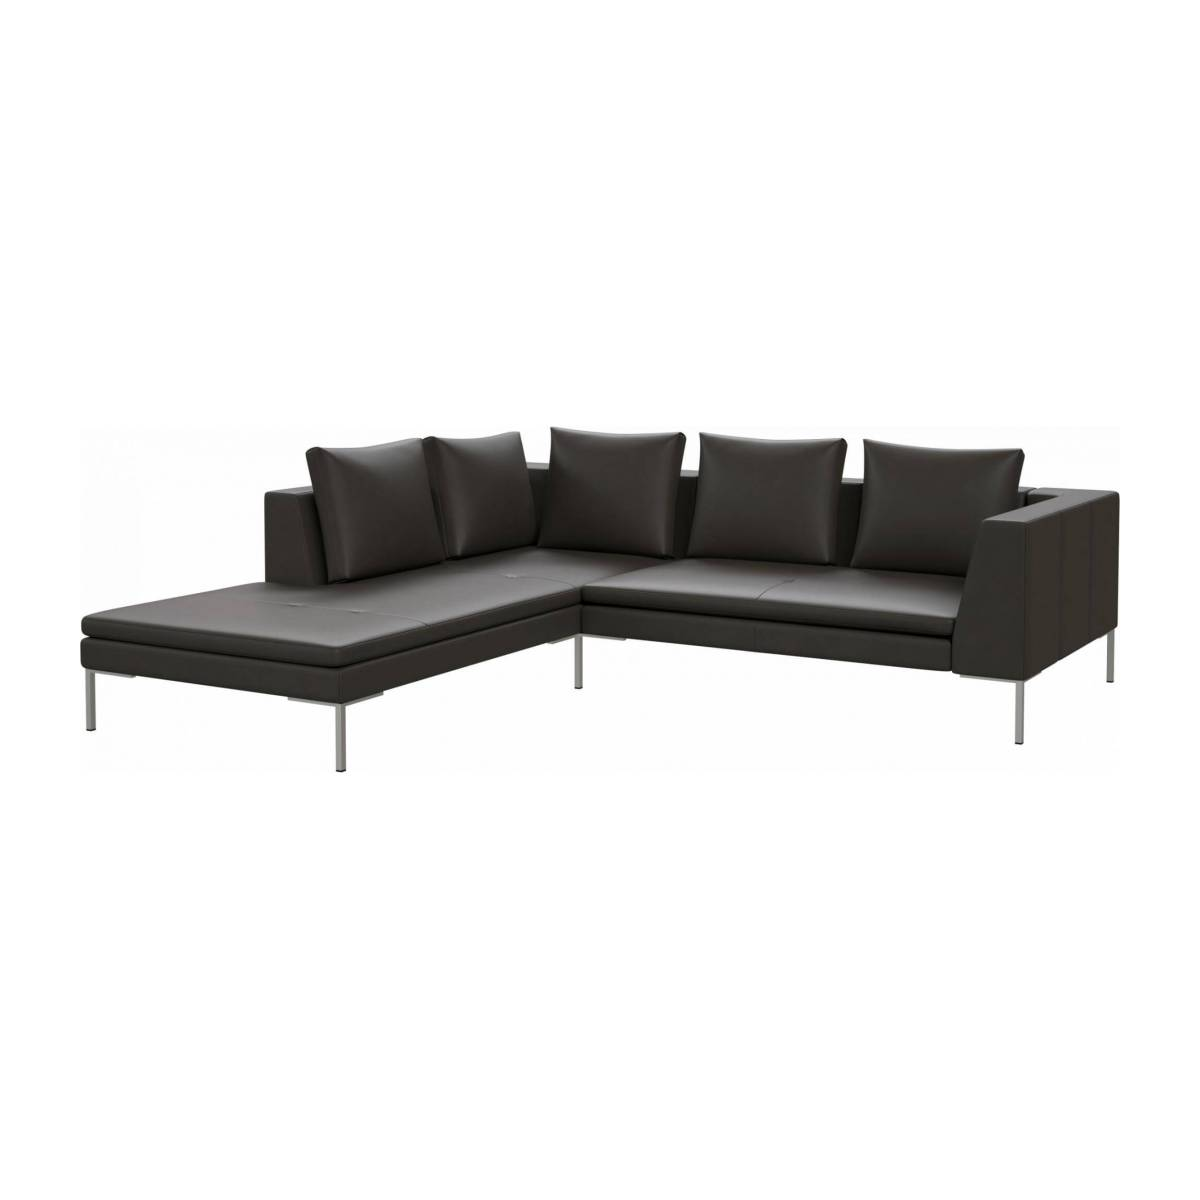 2 seater sofa with chaise longue on the left in Savoy semi-aniline leather, grey  n°2